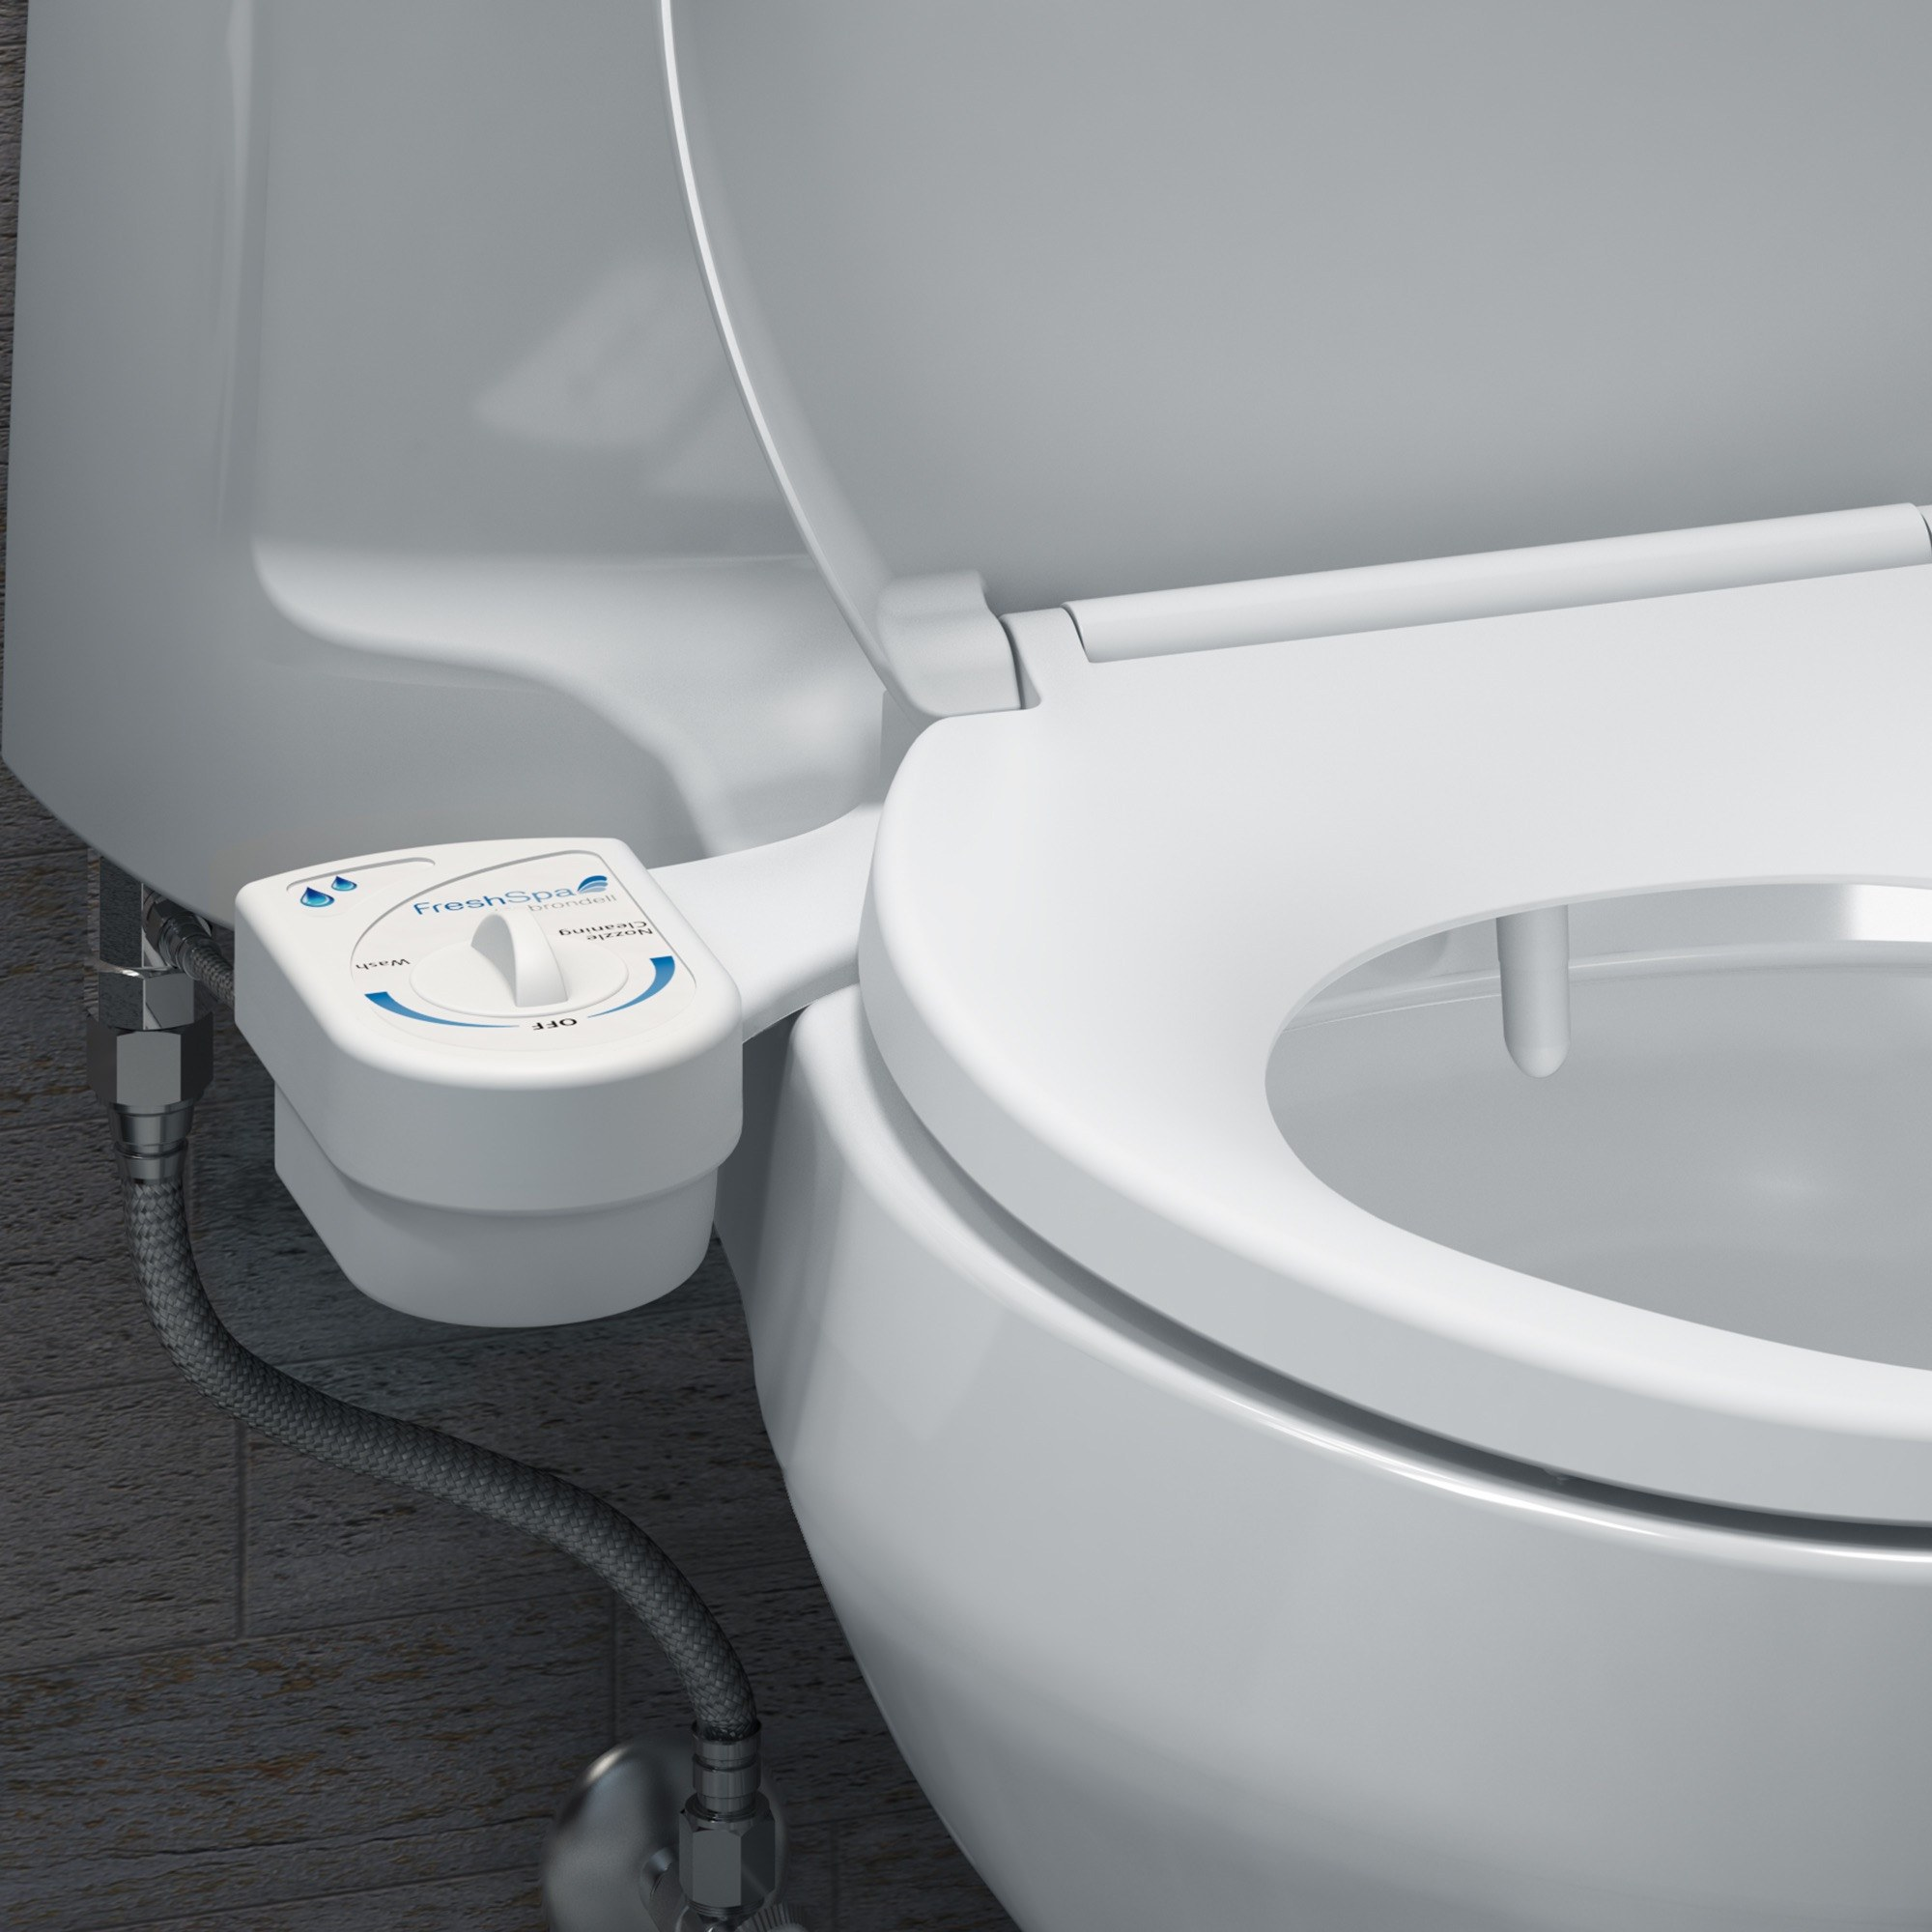 Toilet with built in bidet home design ideas - Freshspa Fs10 Bidet Attachment Installed Shot Closeup Easy Bidet Toilet Attachment Brondell